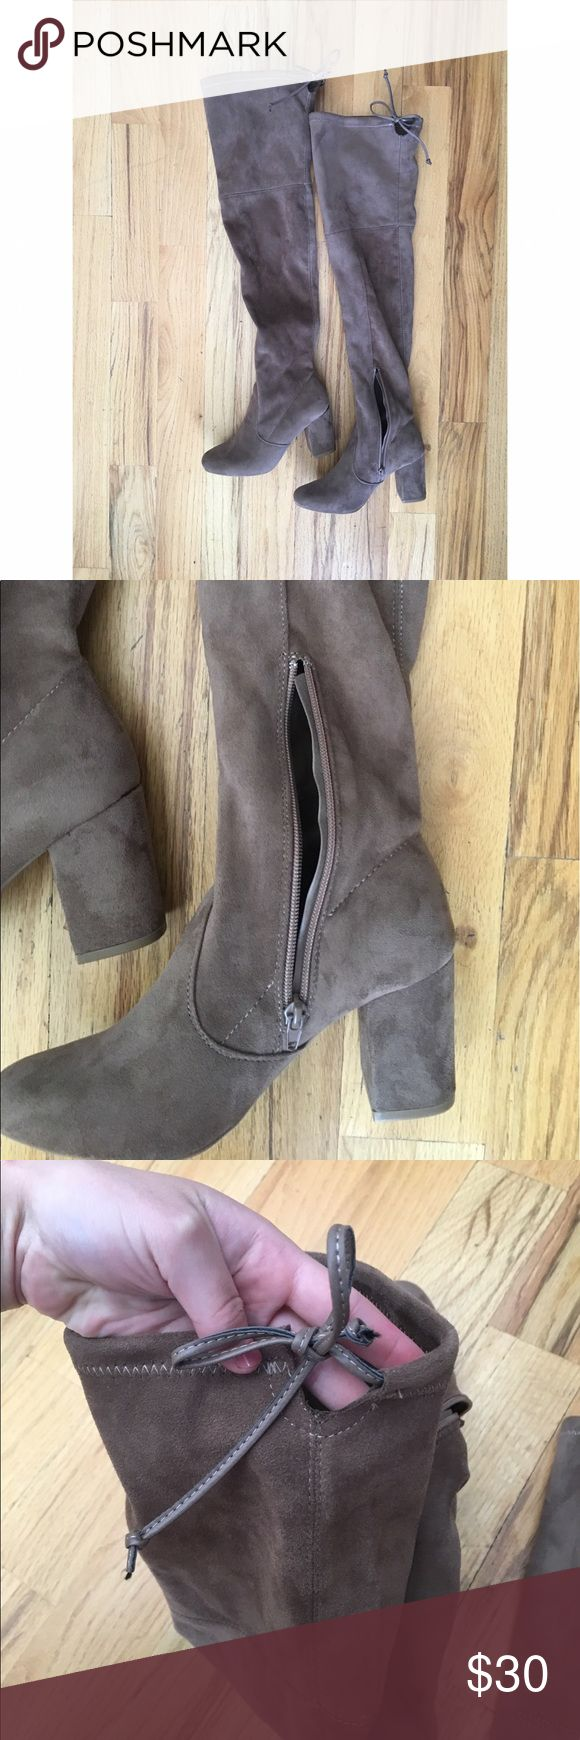 """Charlotte Russe Tie-back over-the-knee boots Taupe over-the-knee boots that have never been worn. There is an tie on the back so you can adjust it. Heels are 3"""". Charlotte Russe Shoes Over the Knee Boots"""